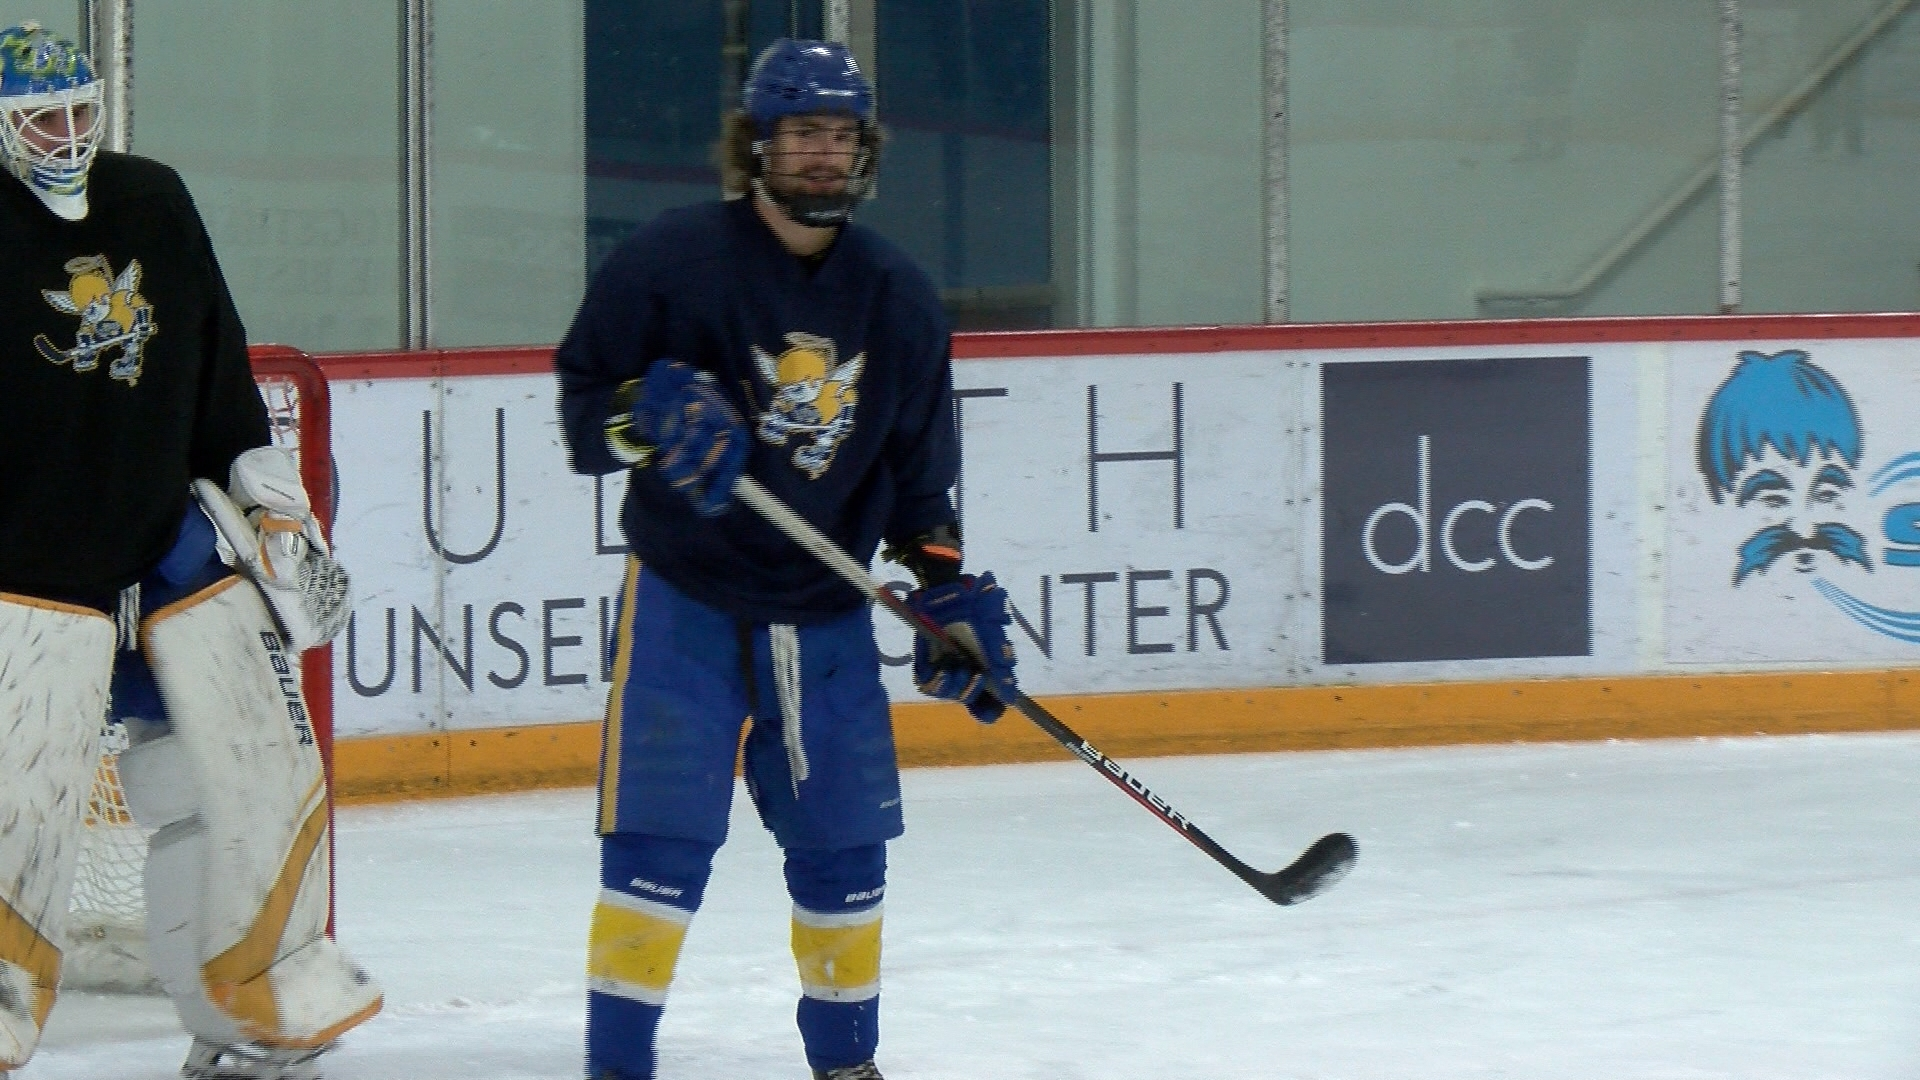 Athlete of the Week: St. Scholastica's Nate Pionk